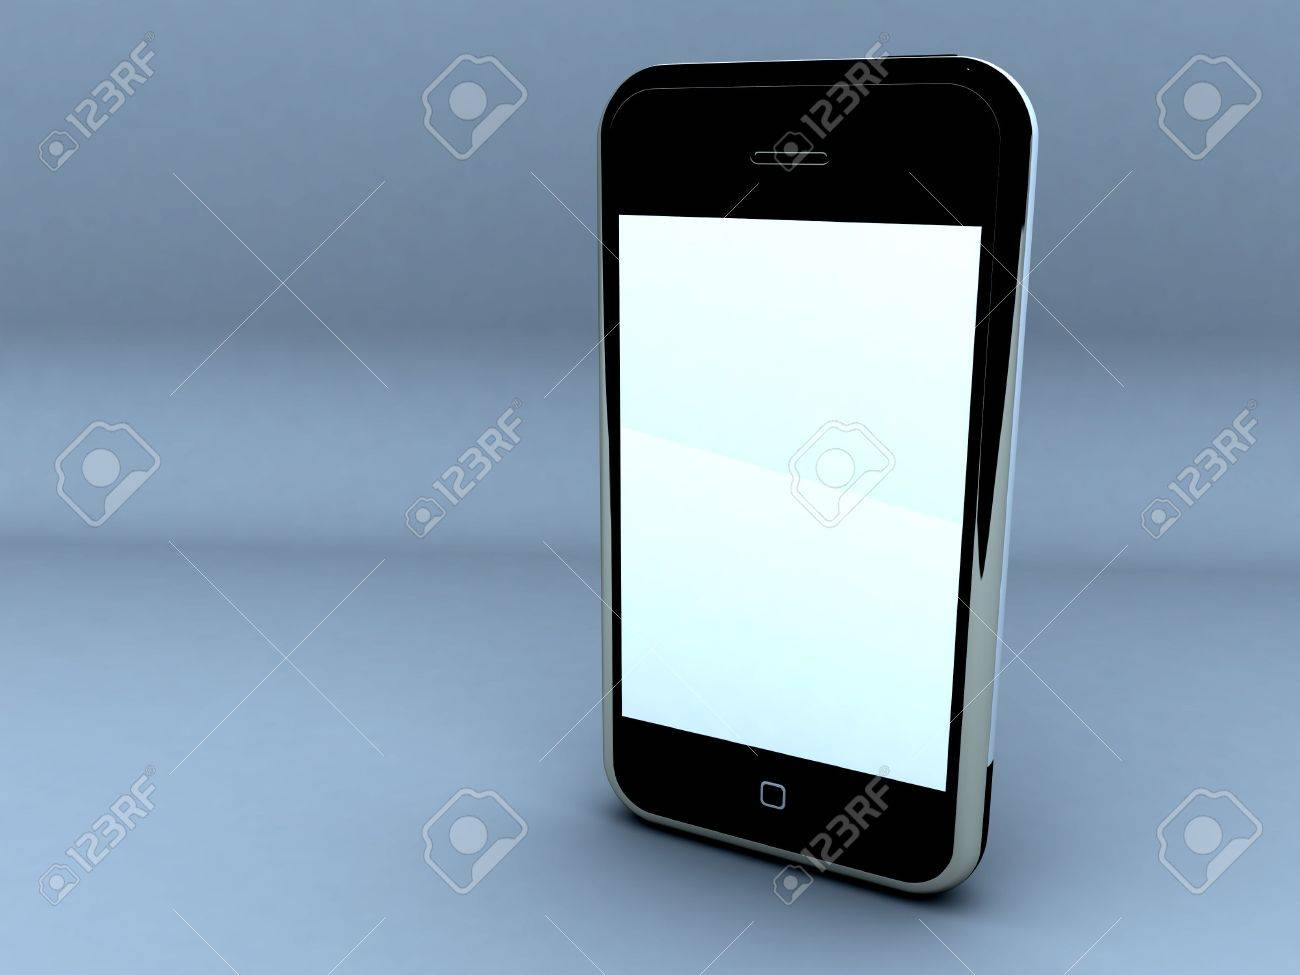 render of a touch screen cellphone. Stock Photo - 5770363